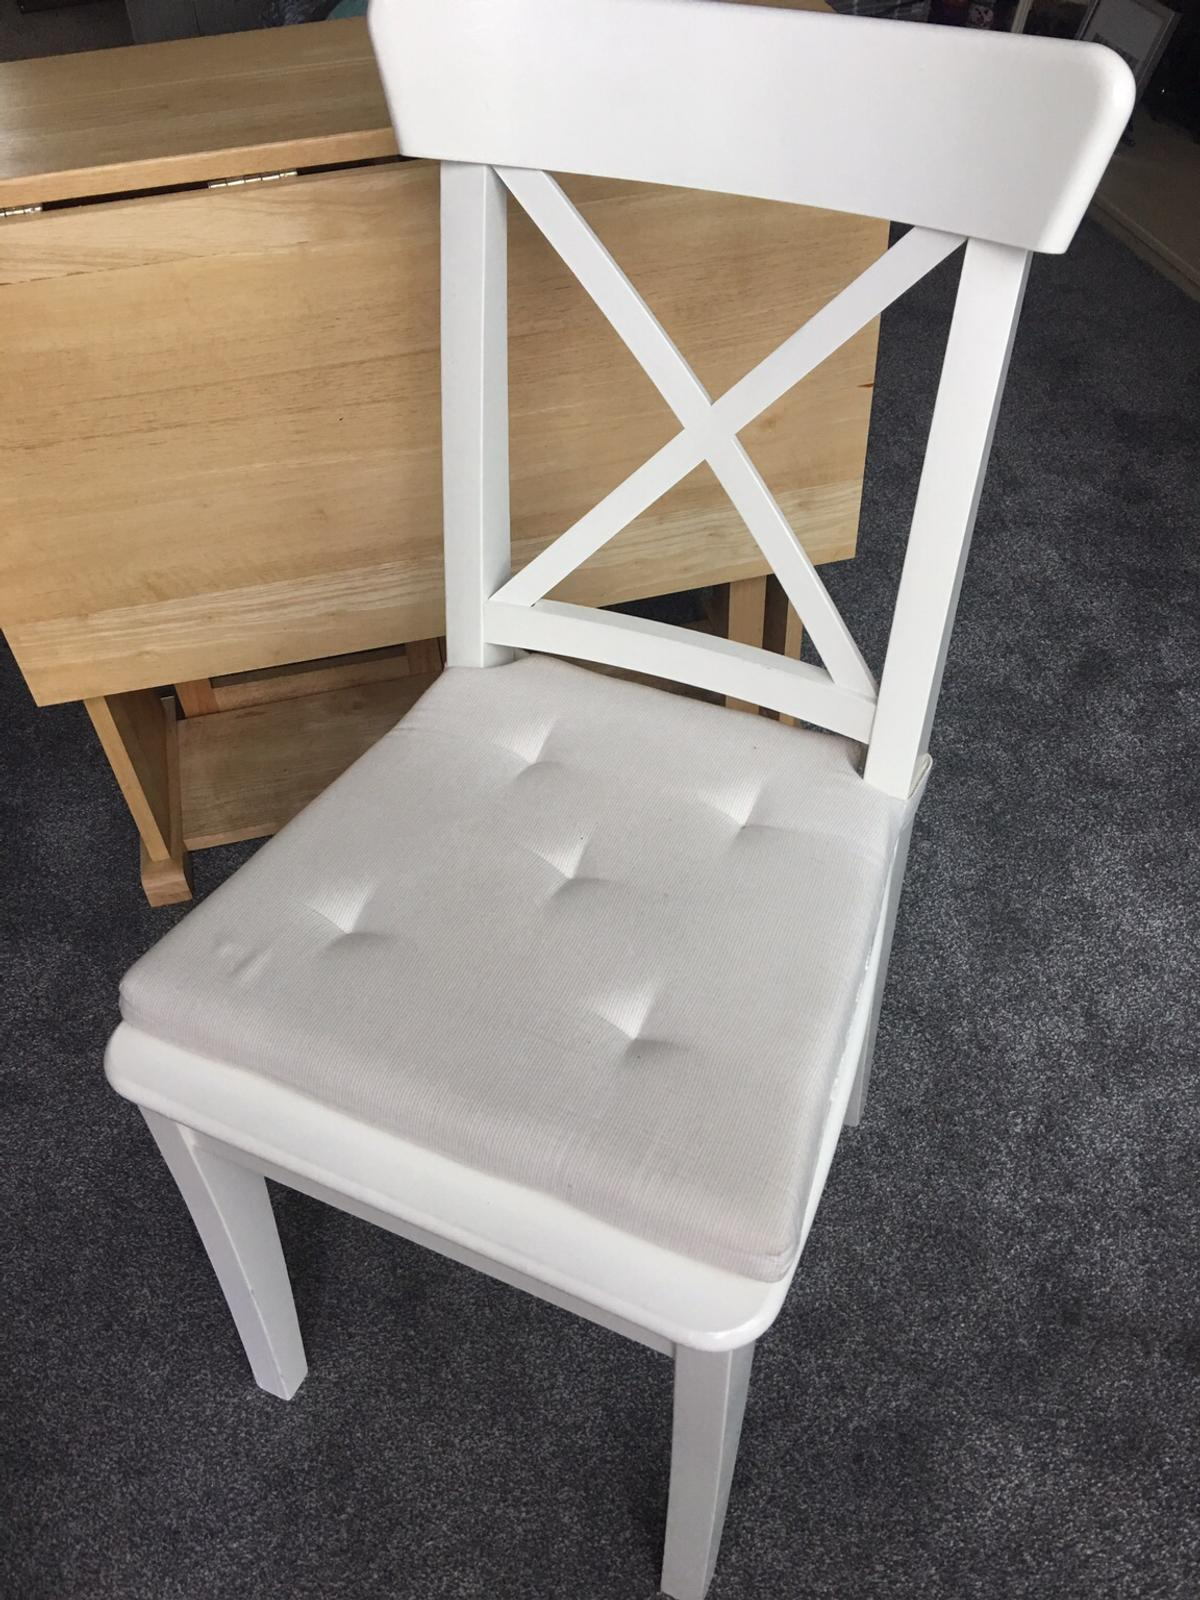 Wondrous Ikea Ingolf White Dining Chairs Half Price Pdpeps Interior Chair Design Pdpepsorg